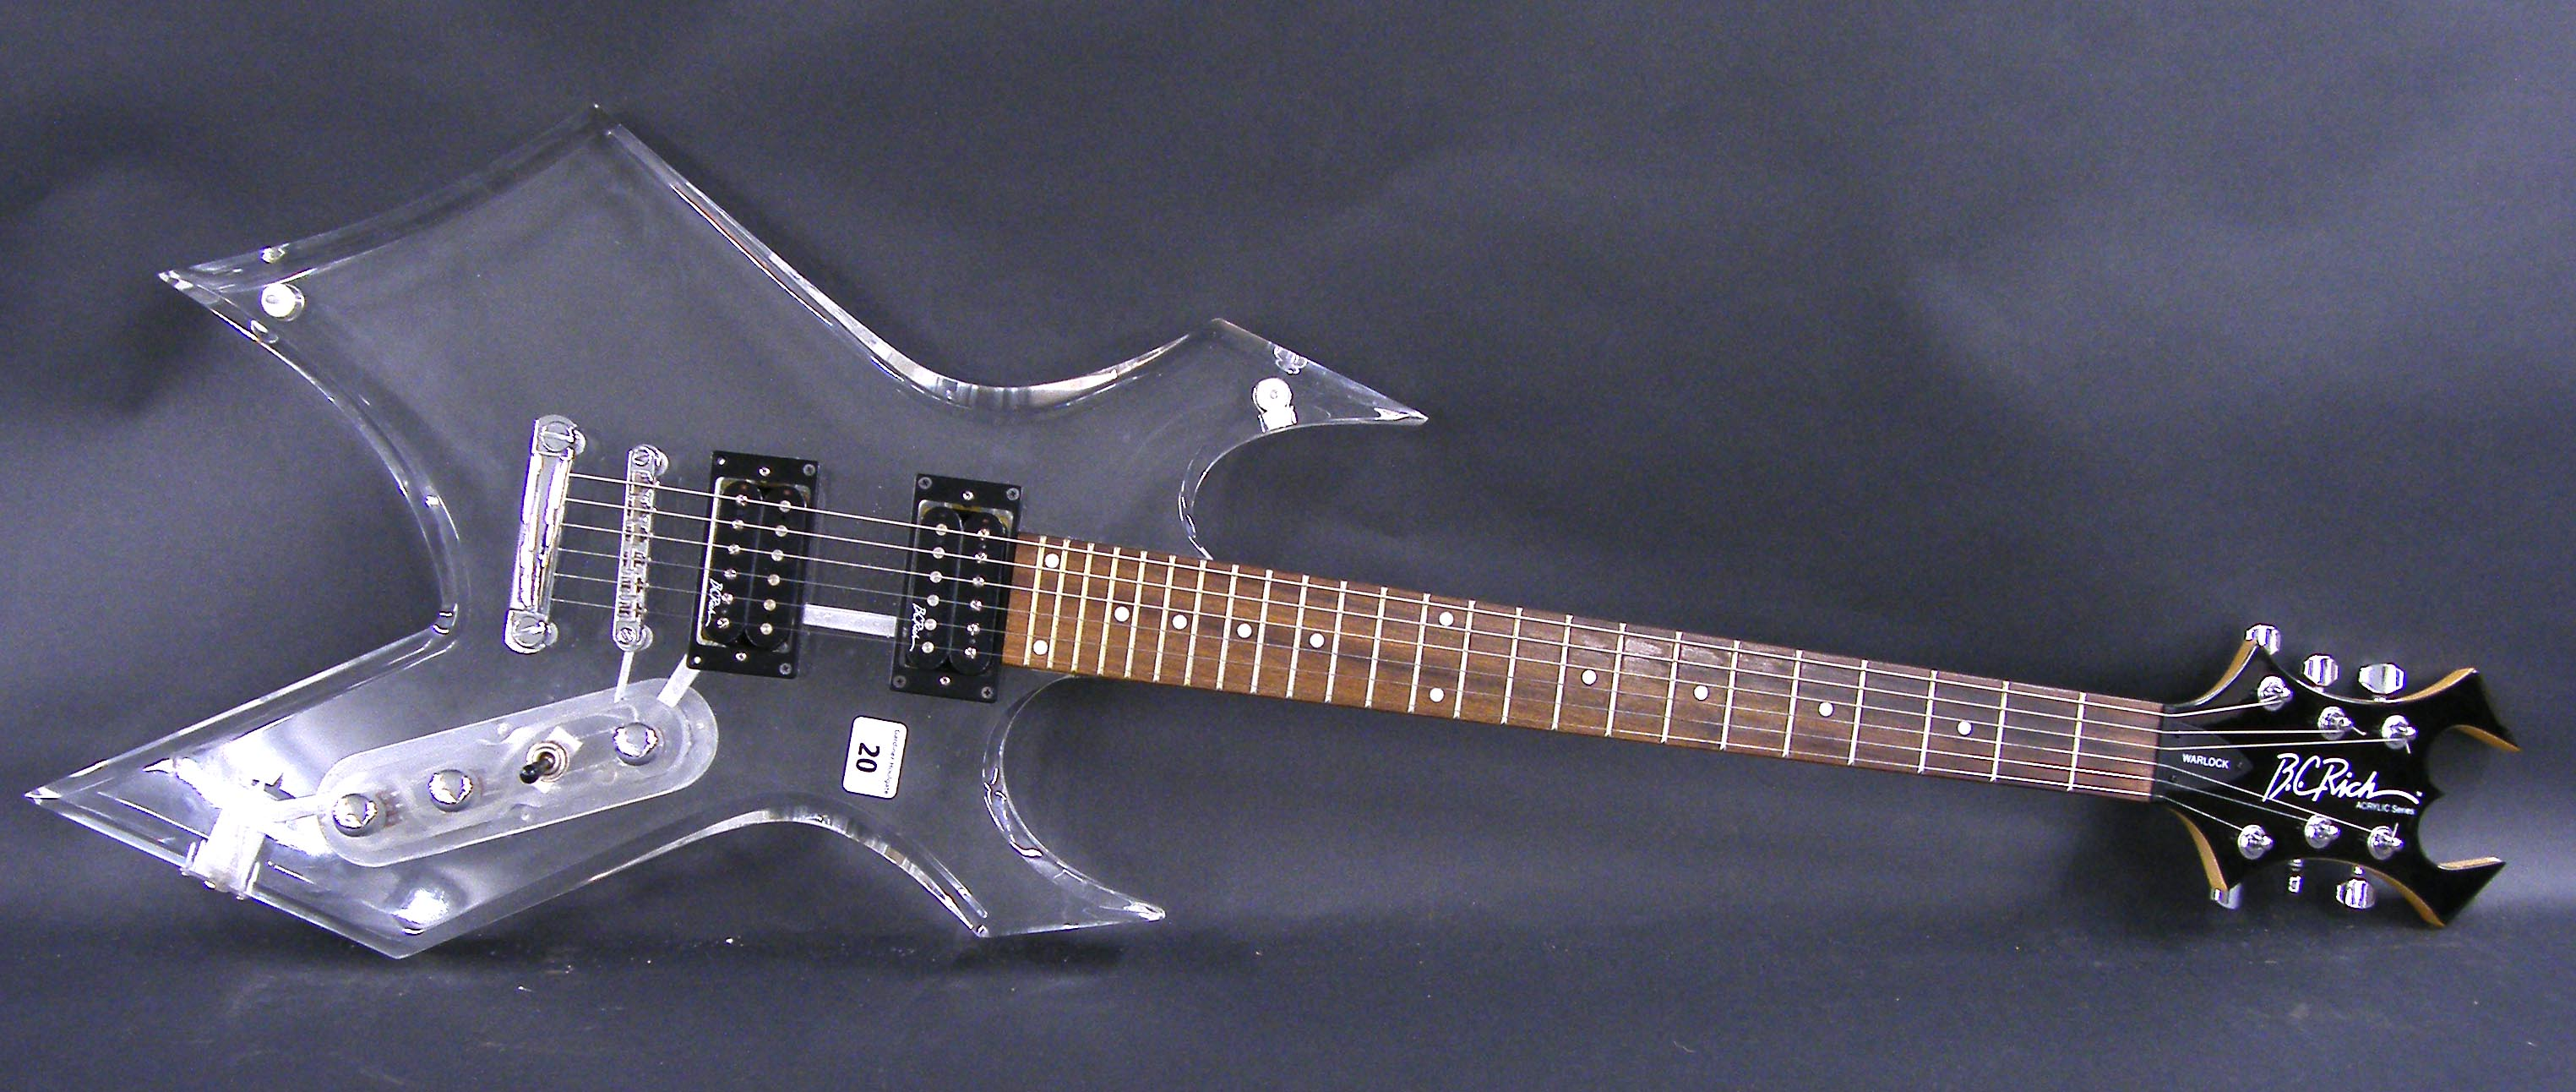 Lot 20 - B.C. Rich Acrylic Series Warlock electric guitar, made in Korea, ser. no. 41201633, clear Perspex